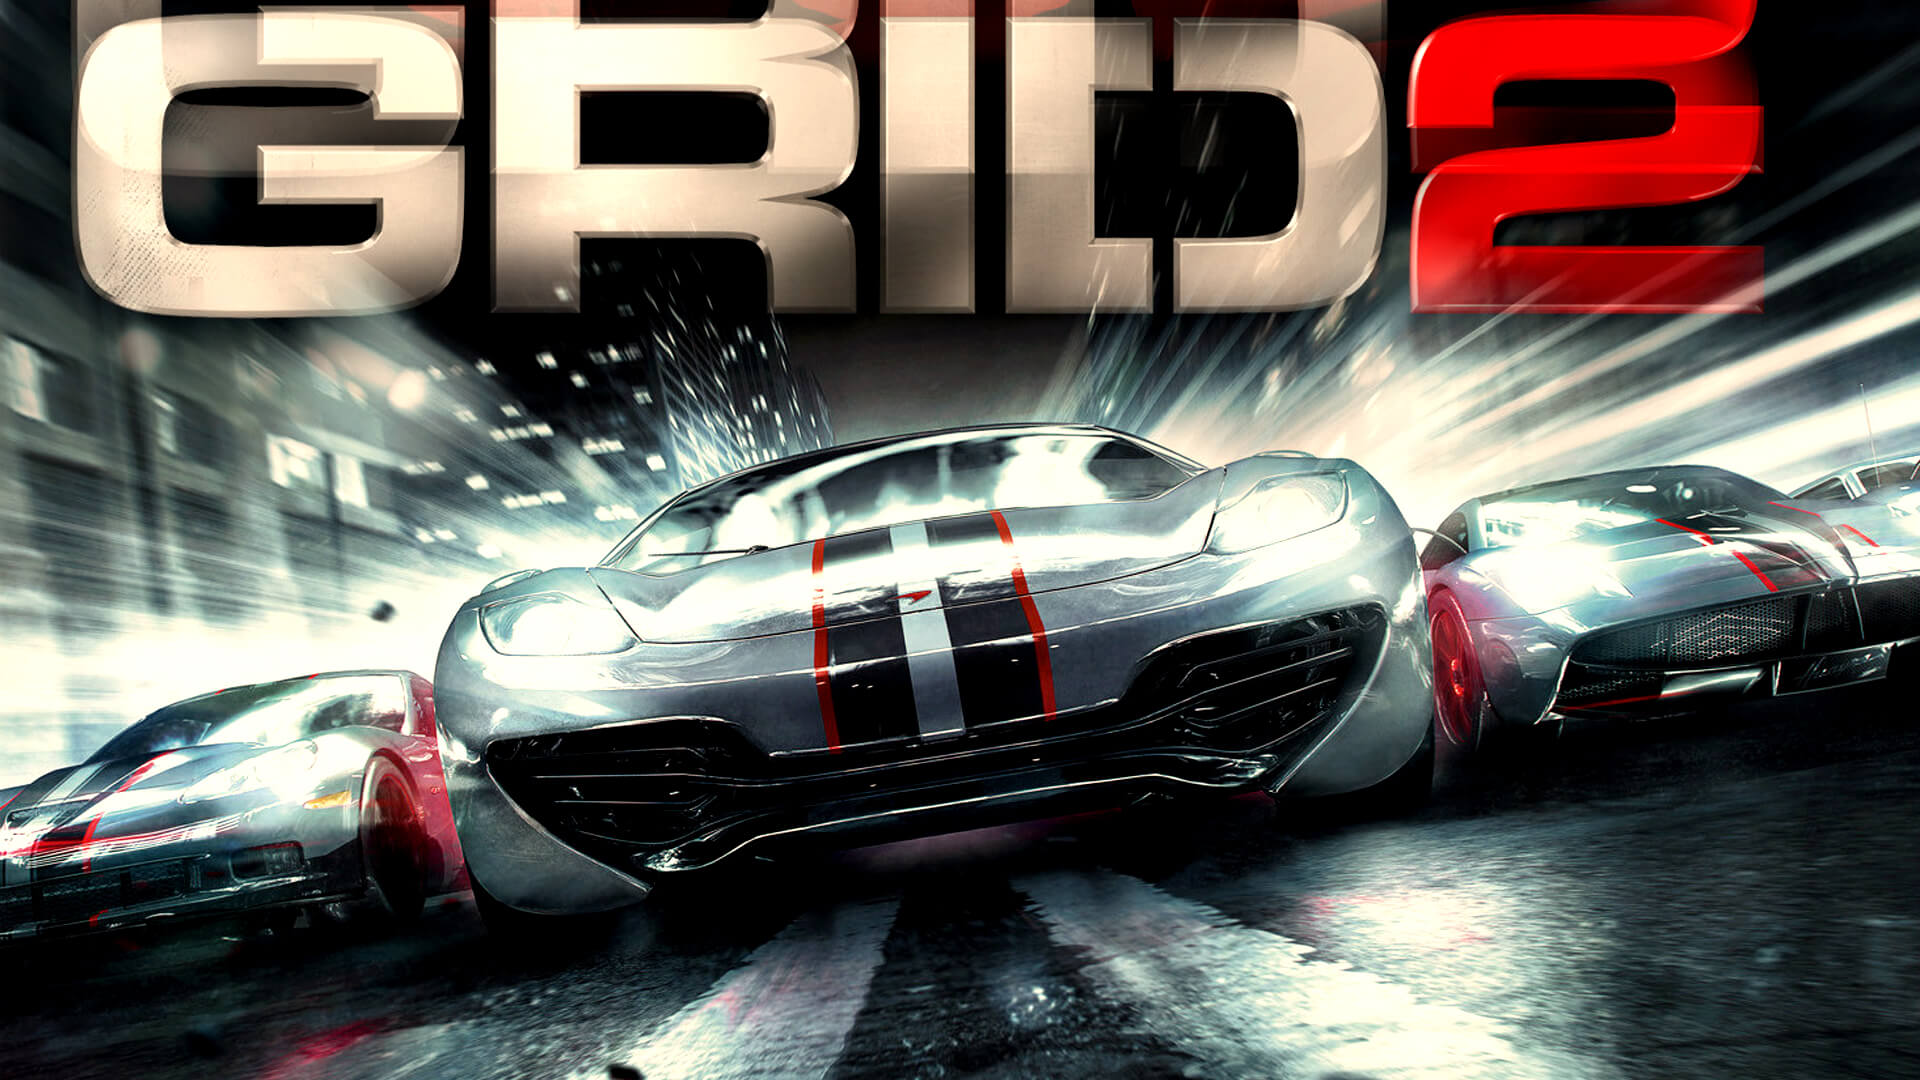 koenigsegg agera r grid 2 with Grid 2 Cars List on Rpg Maker Mv Dlc Import additionally Razendsnel Gamen Met De Koenigsegg Razer Blade Laptop as well Koenigsegg Agera R Wallpaper 1080p in addition Vehicle likewise Koenigsegg Agera R Wallpaper 1080p.